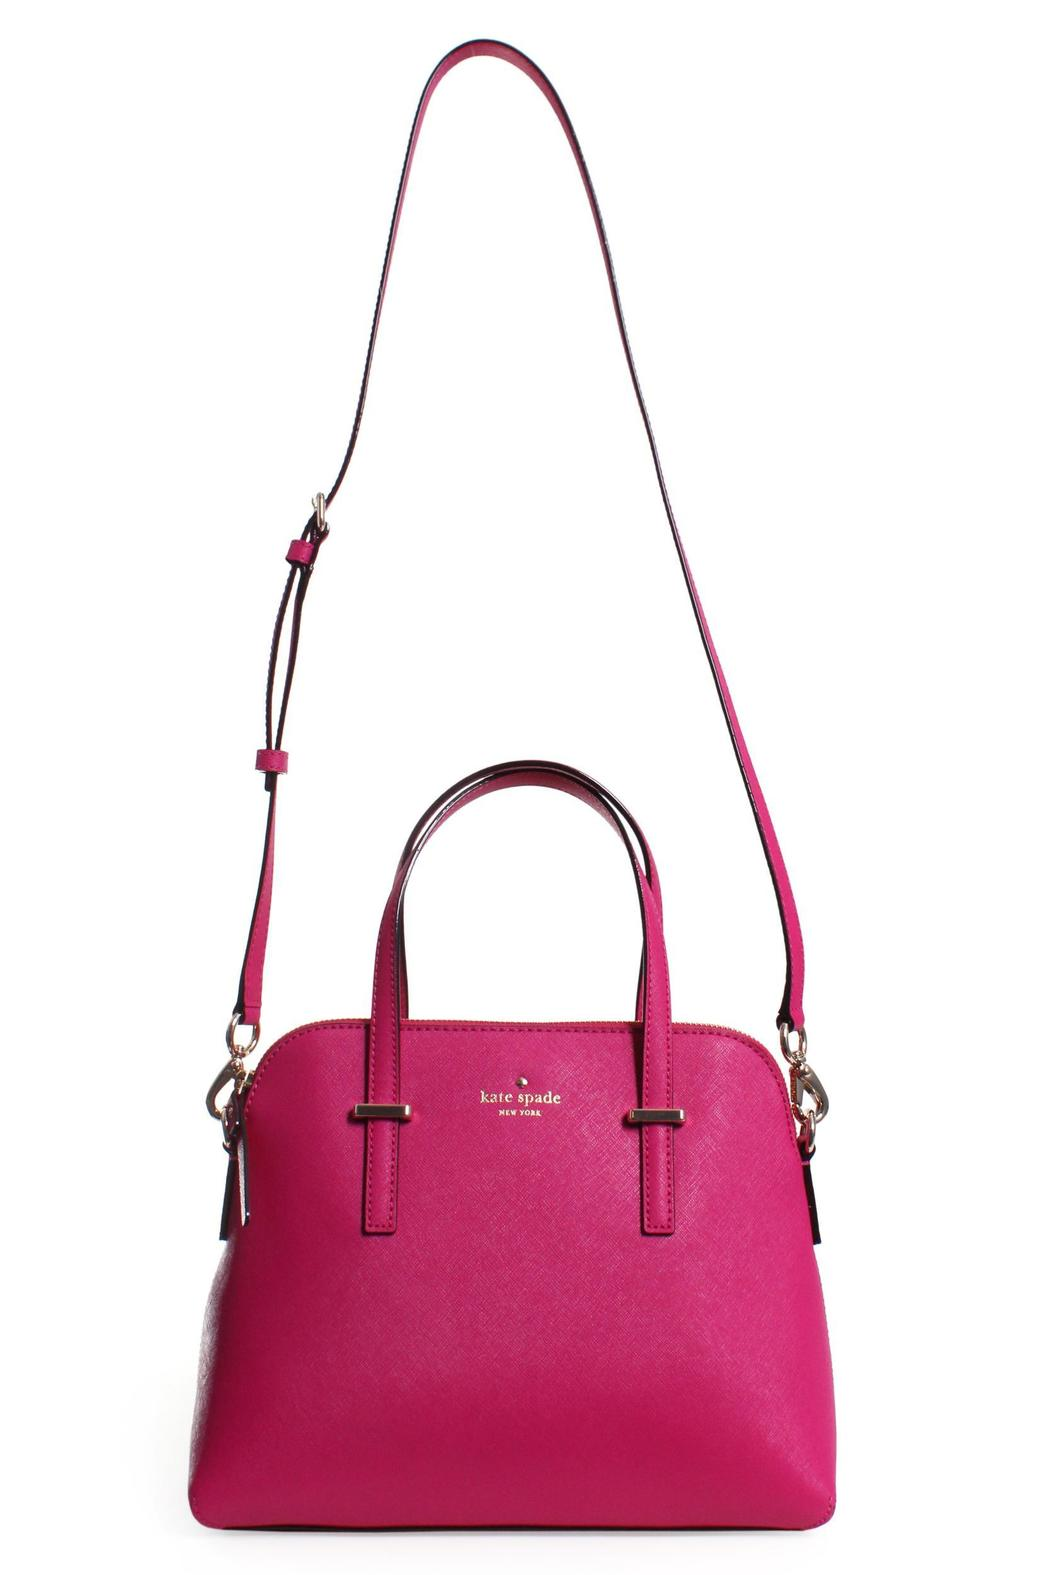 Kate Spade Outlet Canada Store Discount 80% OFF!Buy New Style Cheap Kate Spade Handbags Outlet,Bags,Wallets,From Kate Spade Official Store Online!